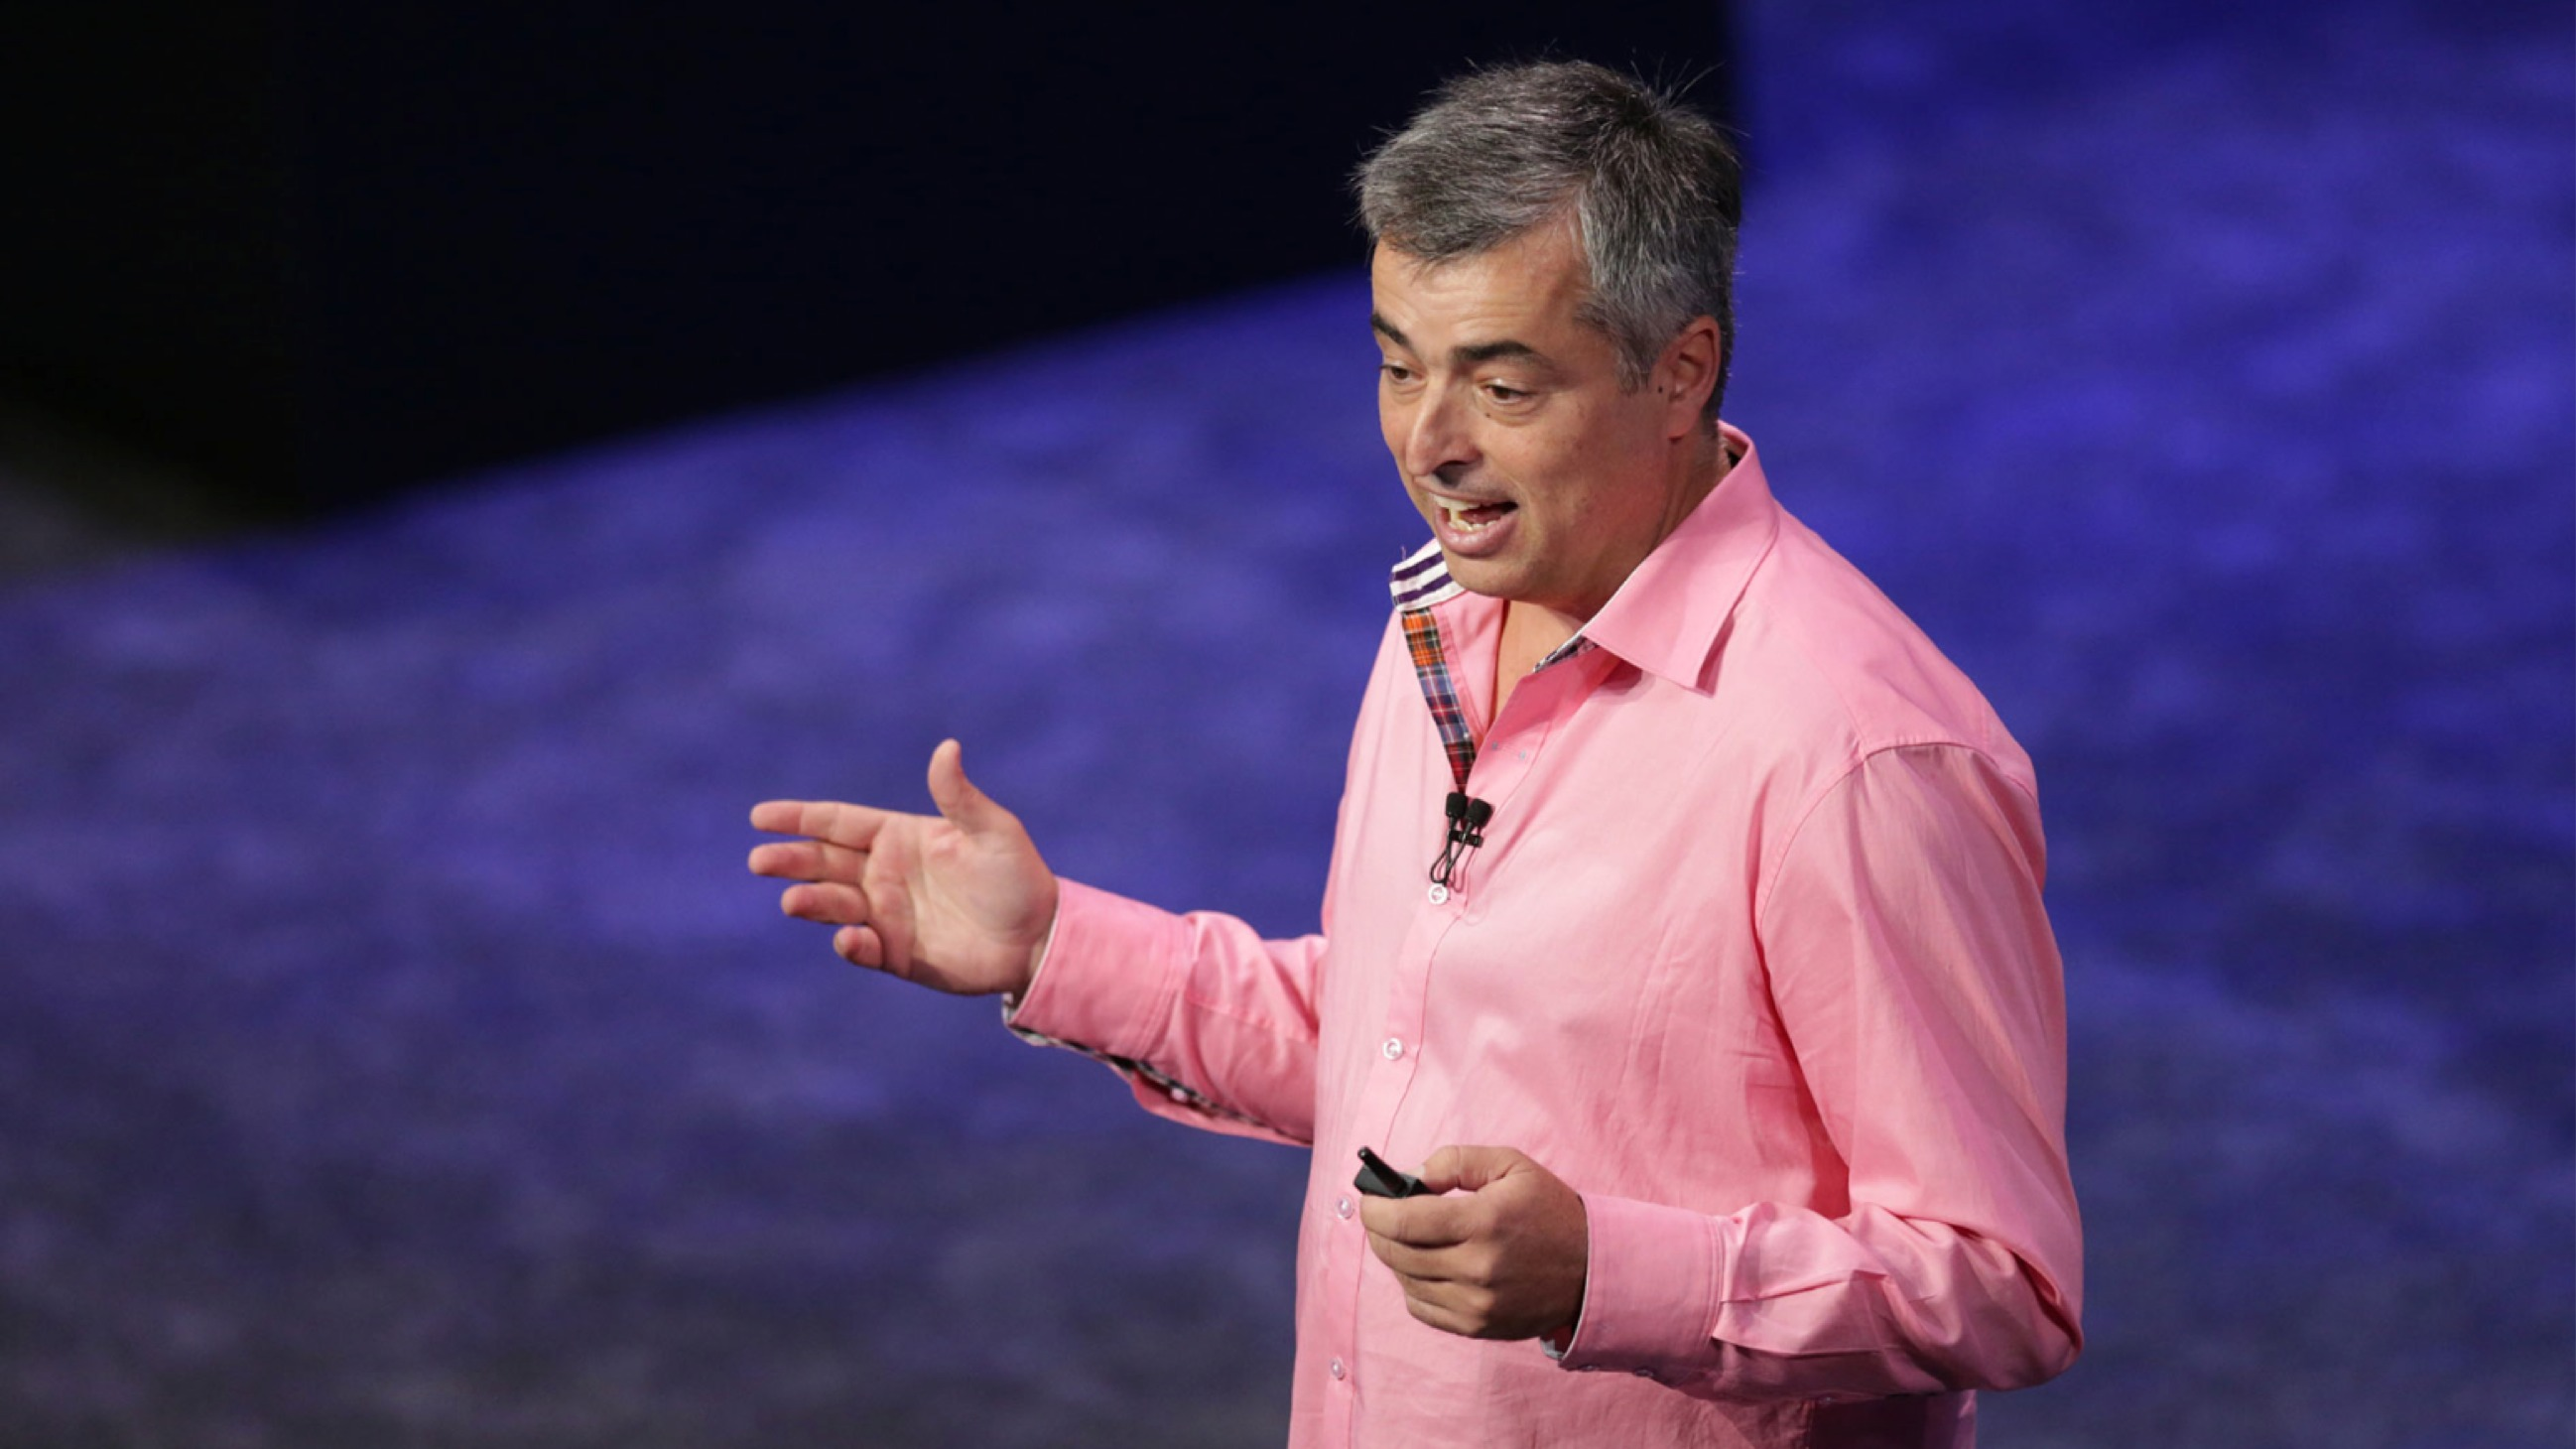 Image result for Apple Eddy Cue